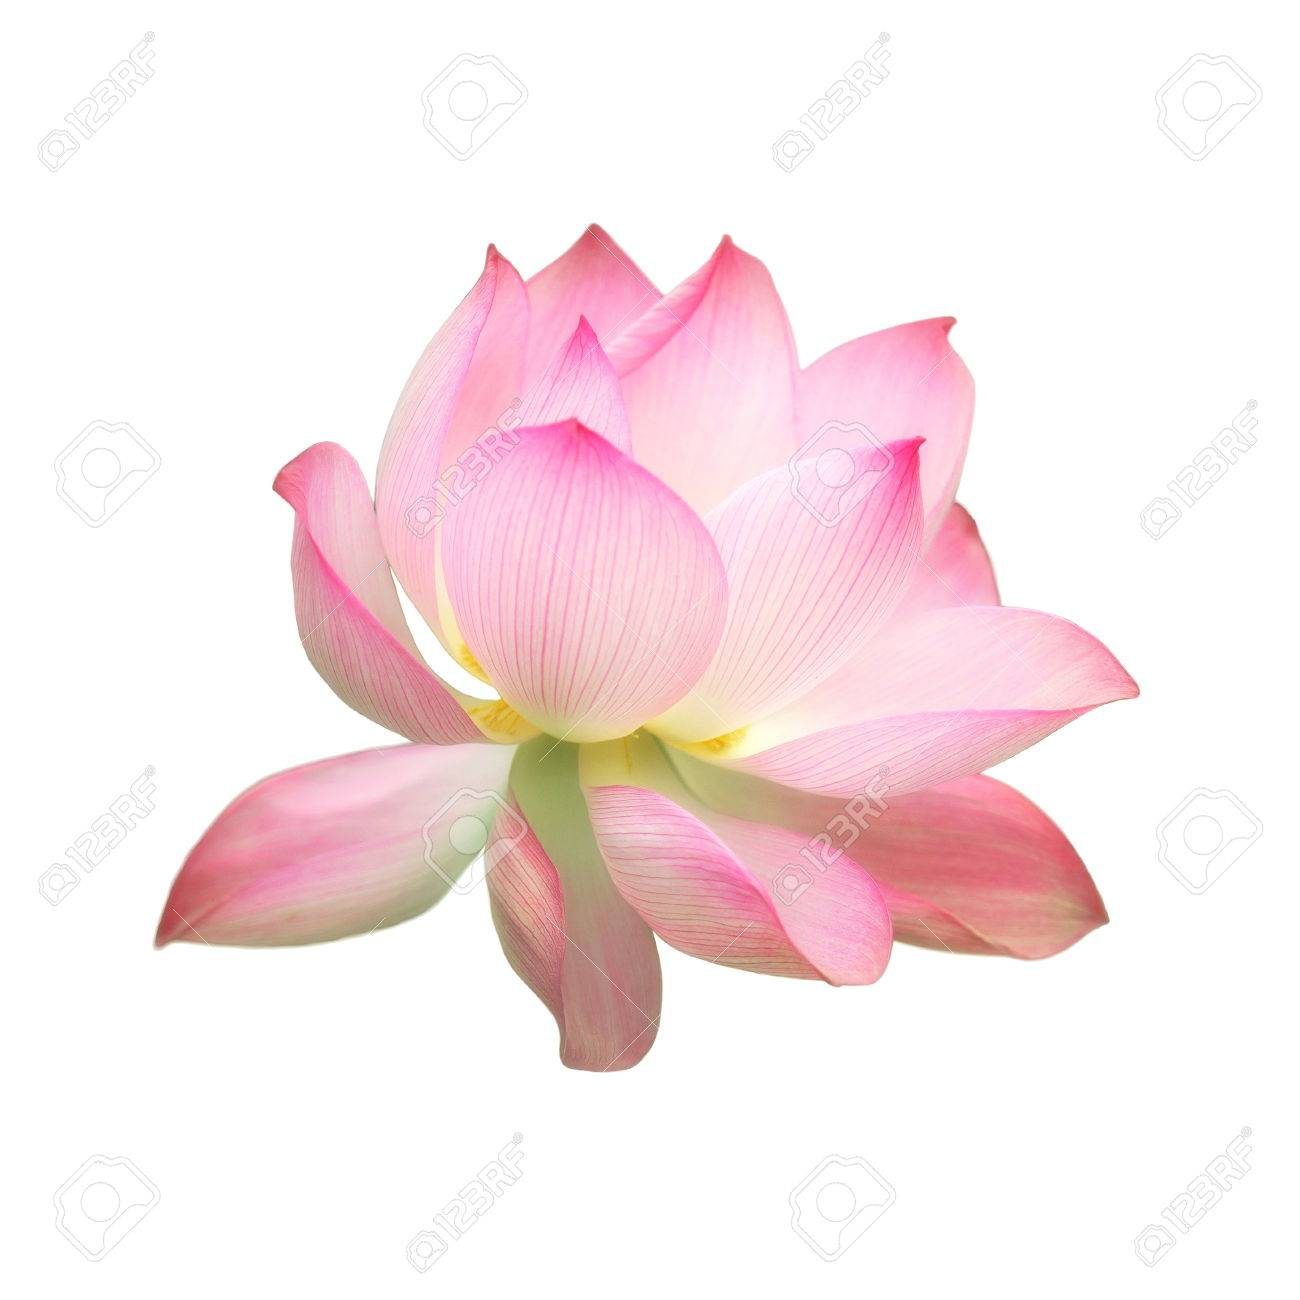 Single Pink Water Lotus Flower Isolated On White Background Stock